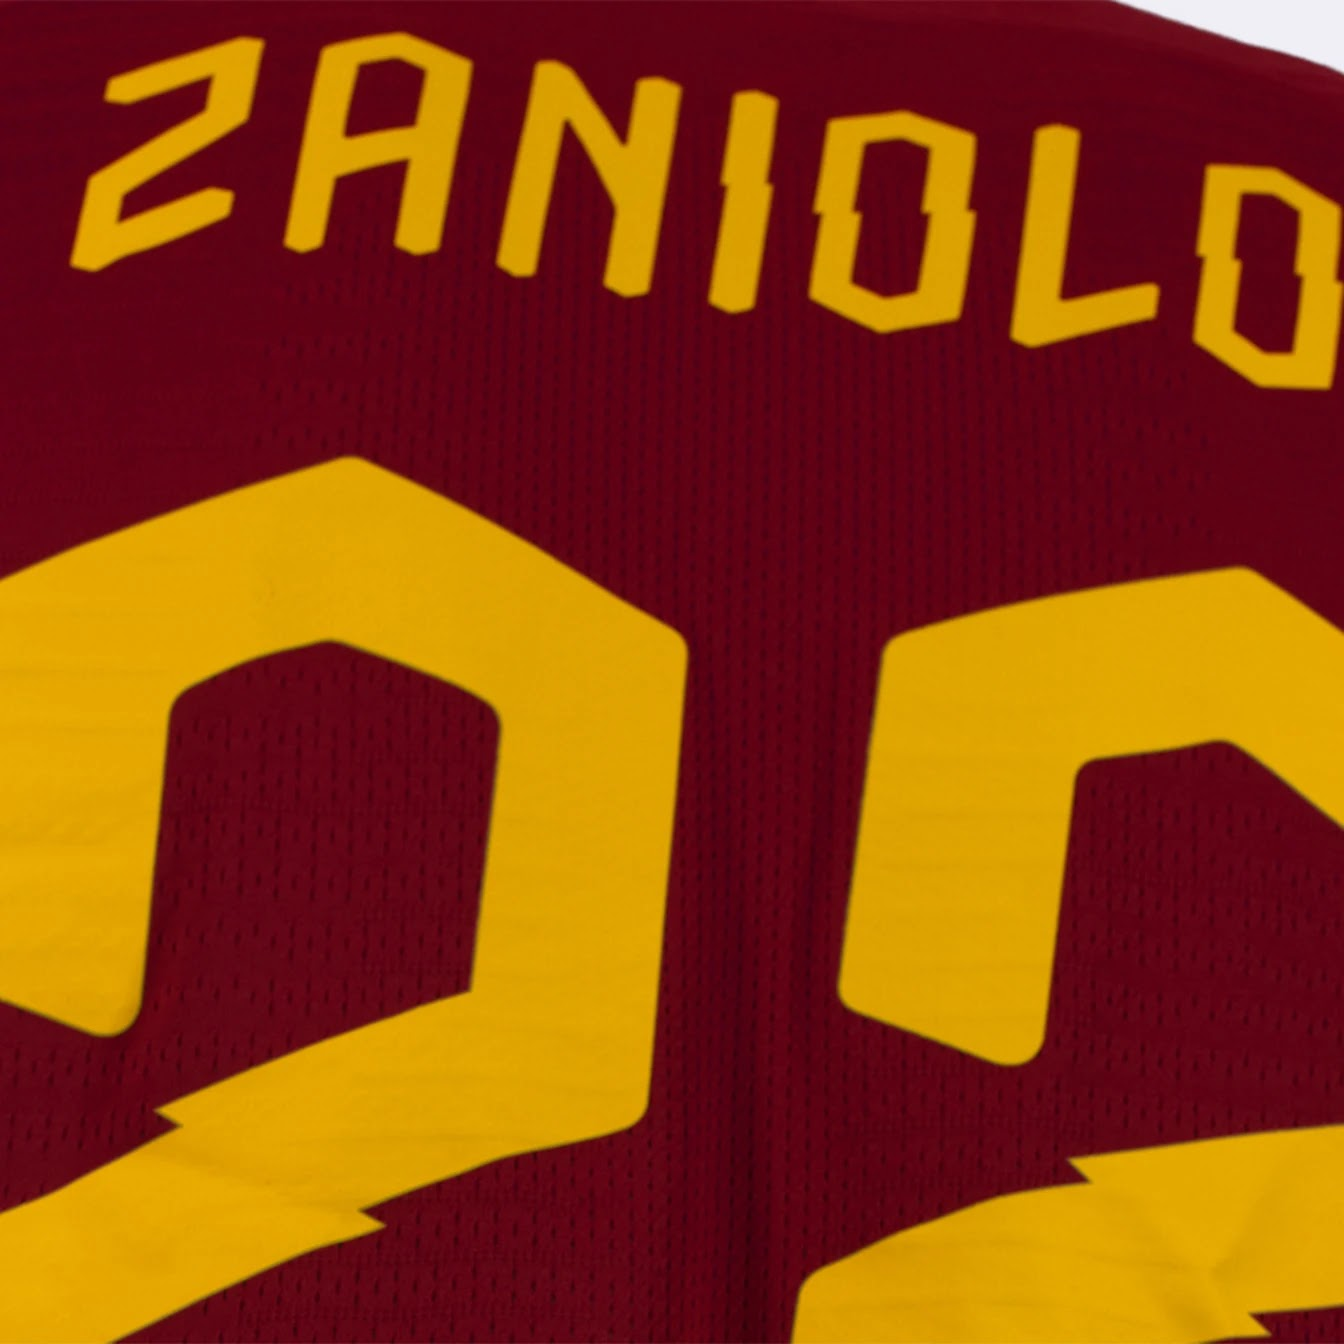 Crazy Nike AS Roma 19-20 Kit Font Revealed - Footy Headlines